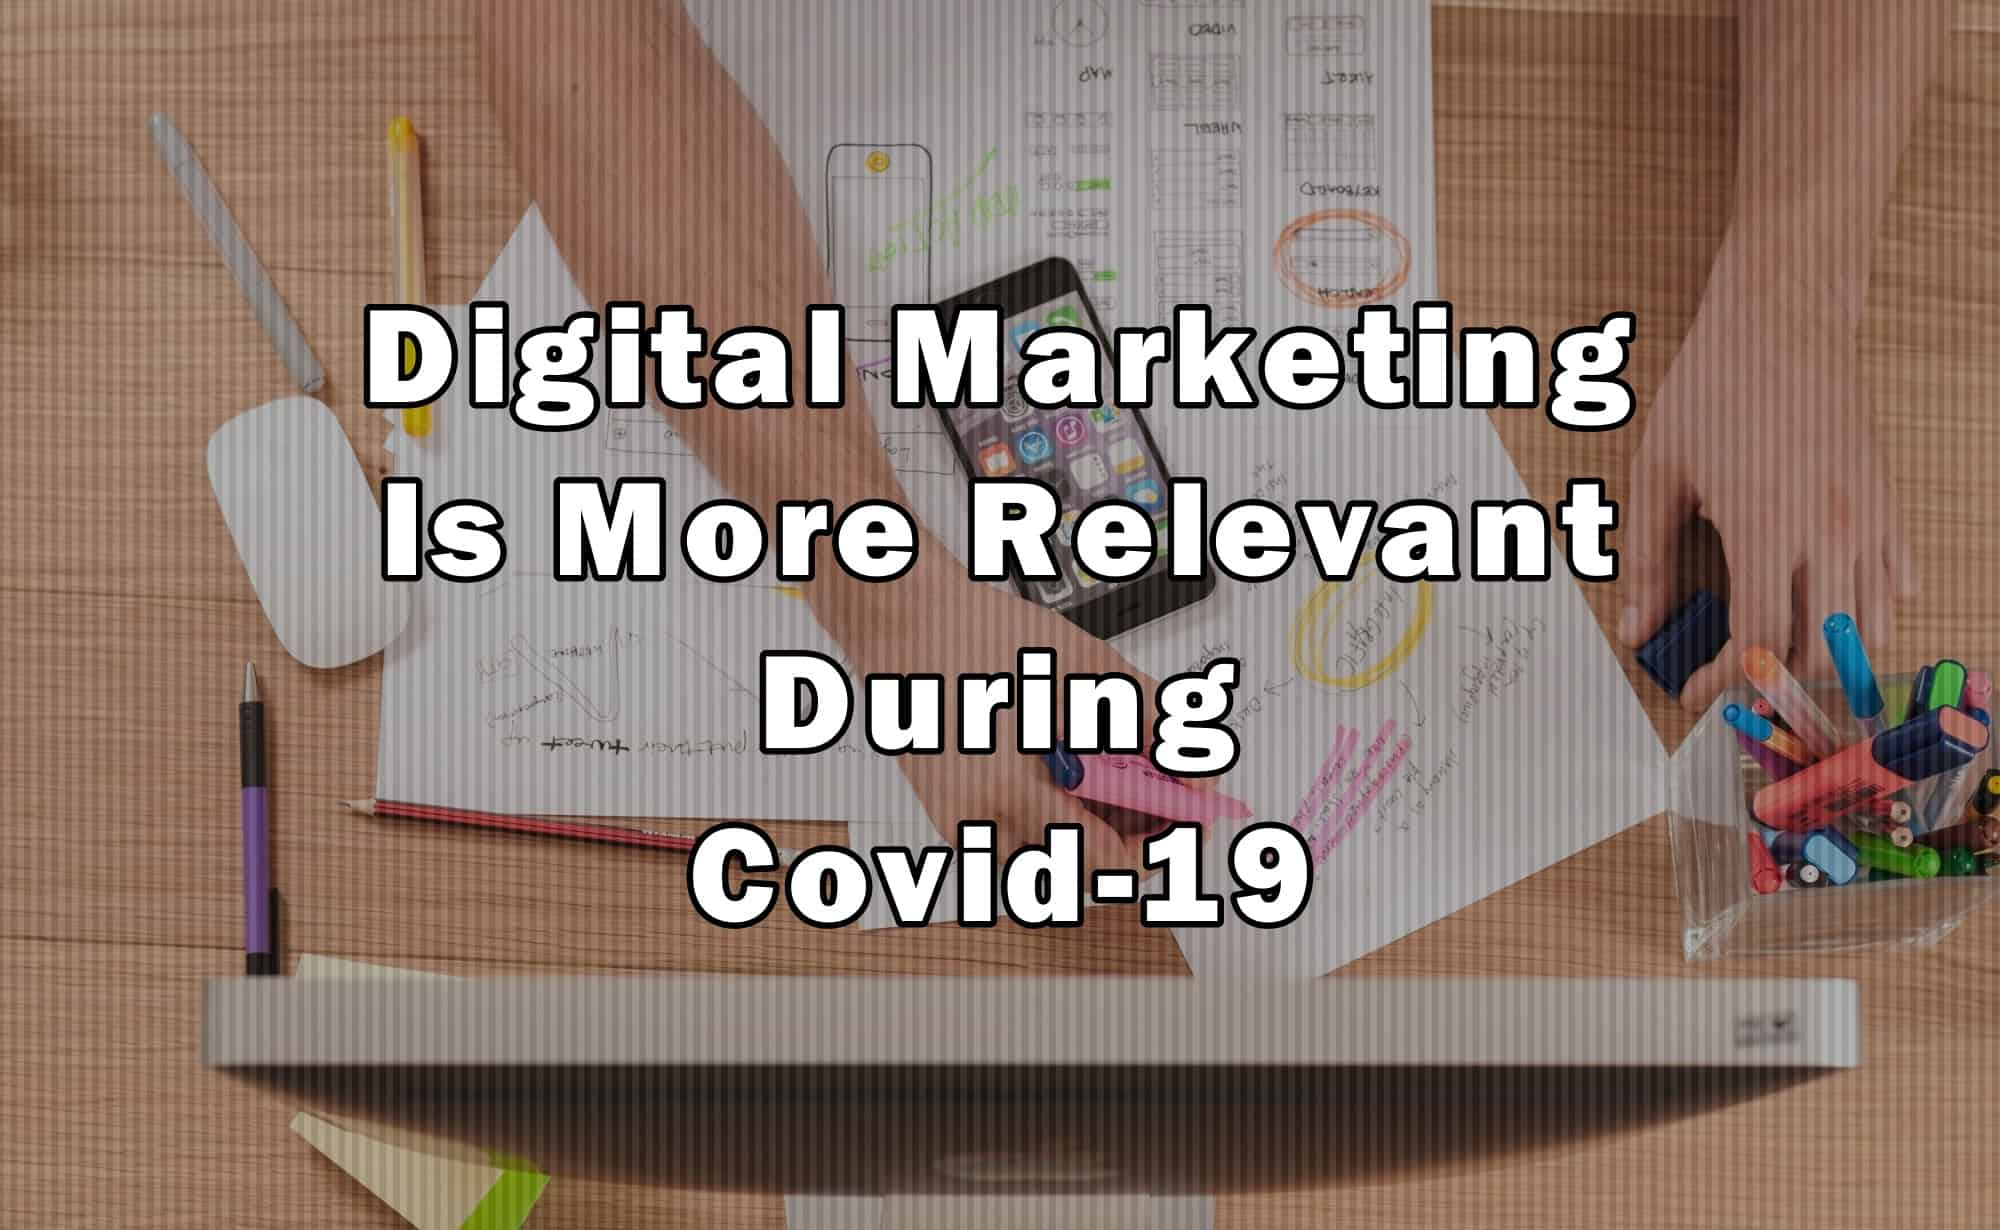 Digital marketing is more relevant during Covid-19